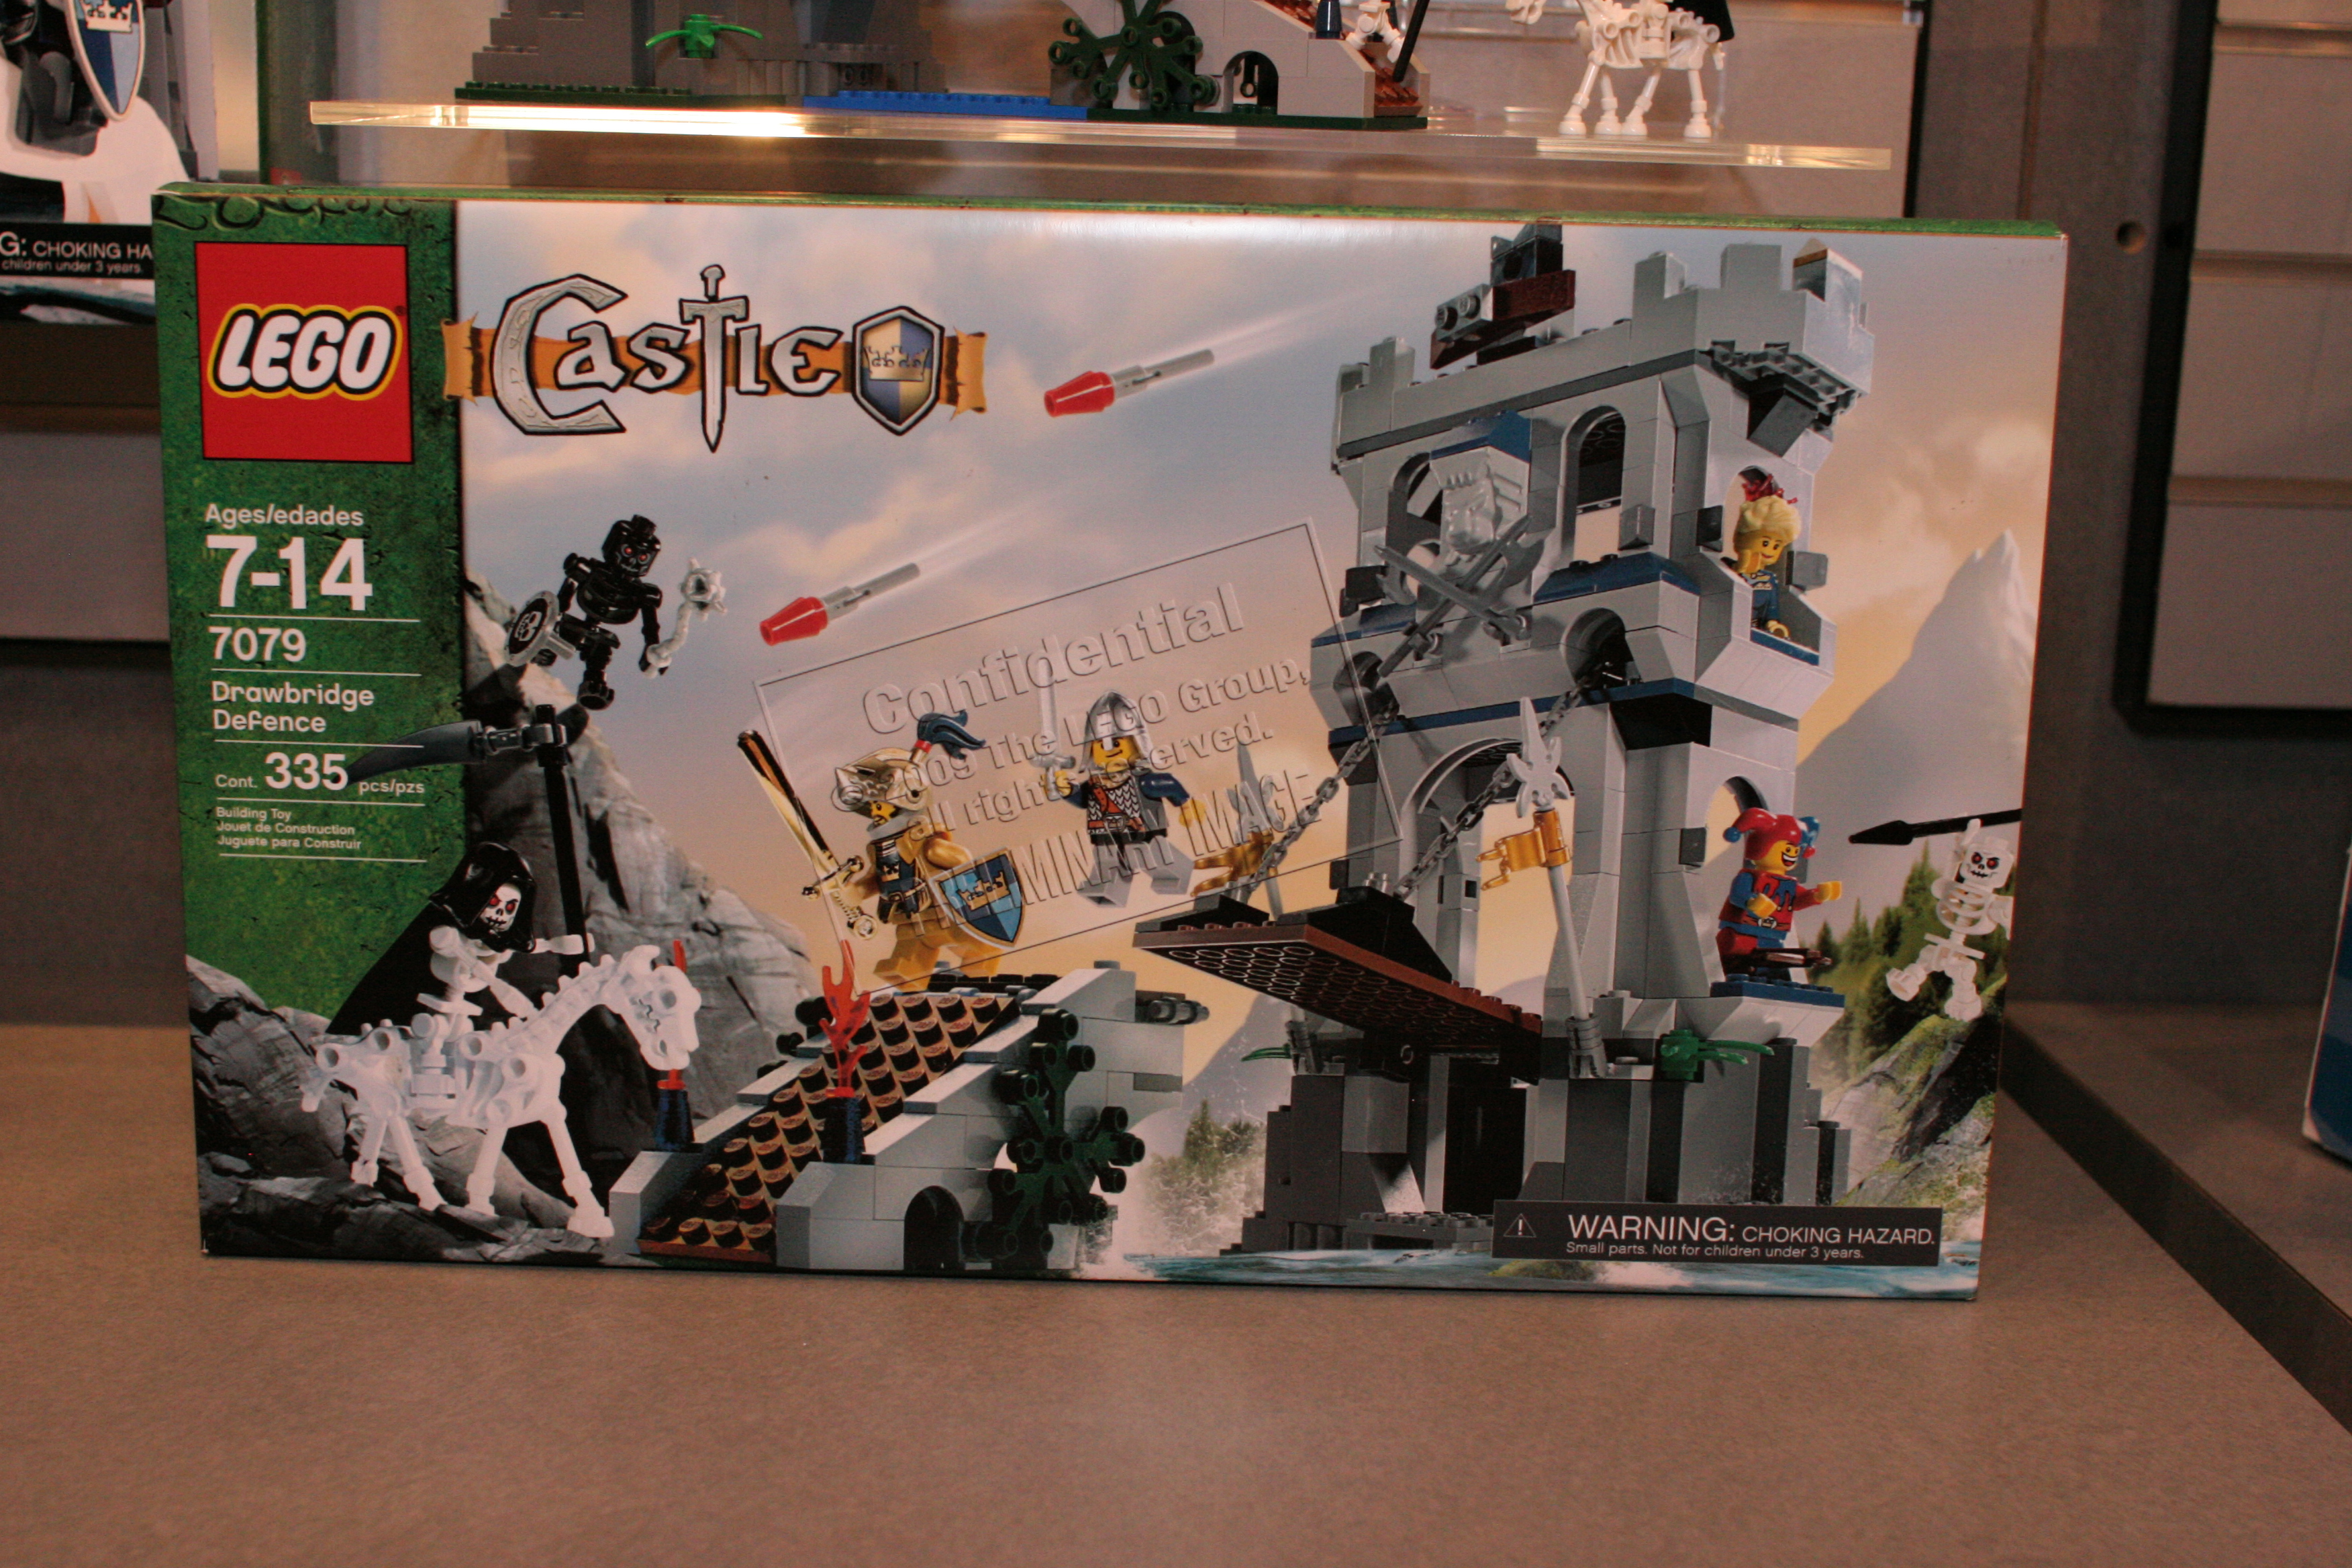 Lego Castle 2009 Drawbridge Defense 7079 Sets The Brick Time